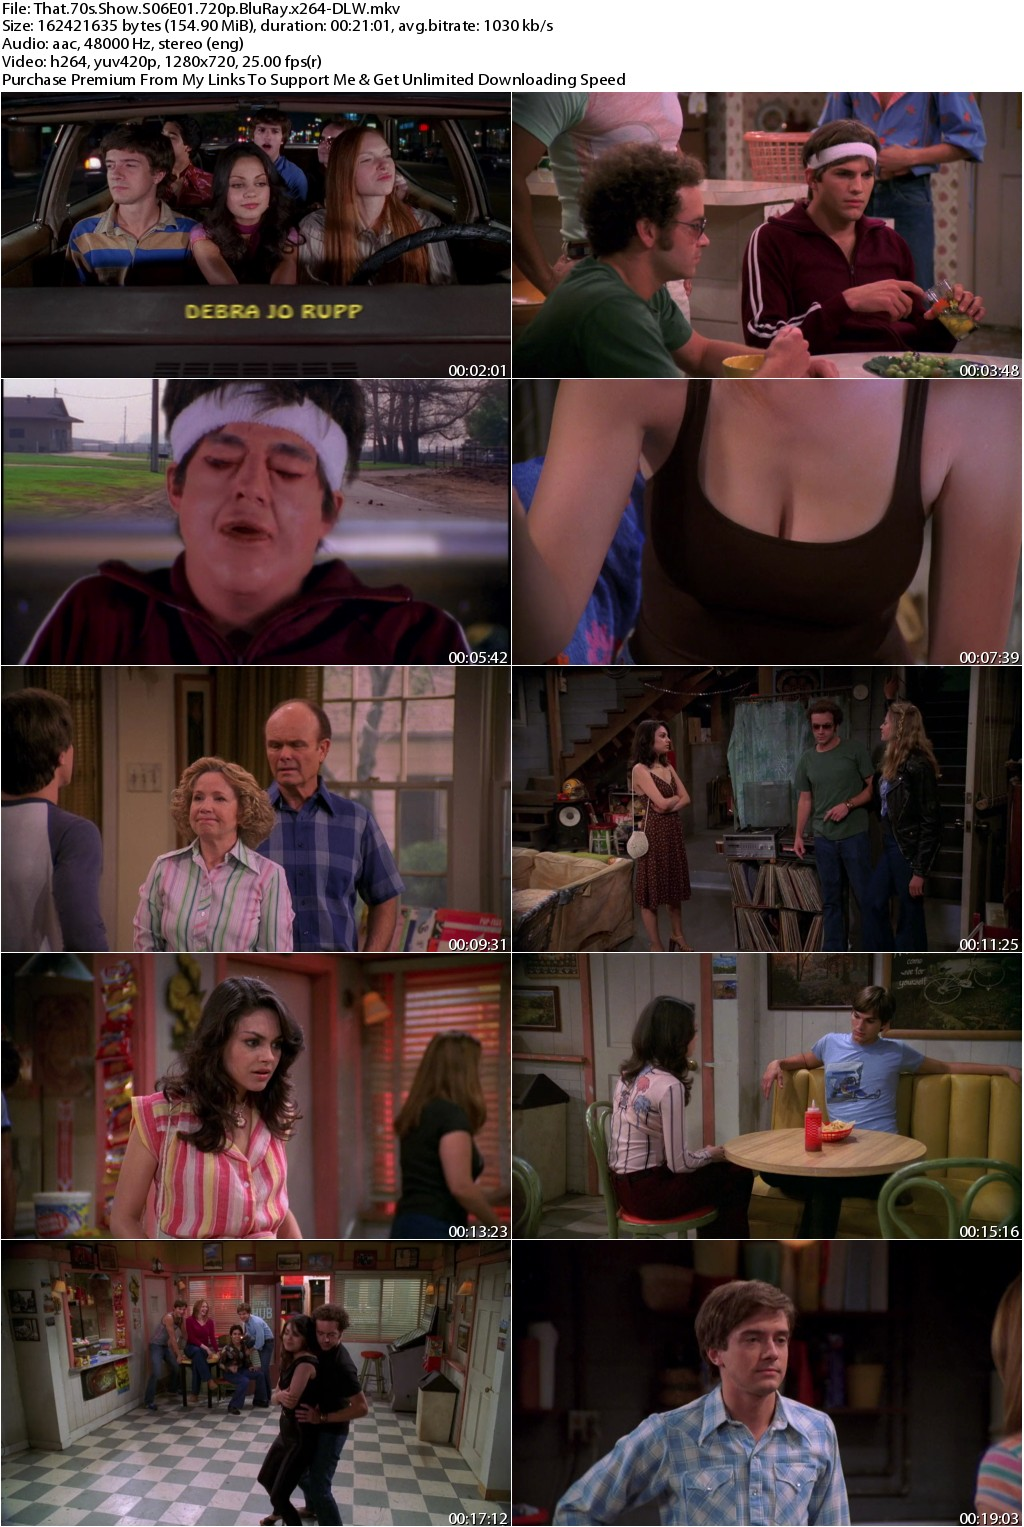 That 70s Show Season 06 Complete 720p BluRay x264-DLW